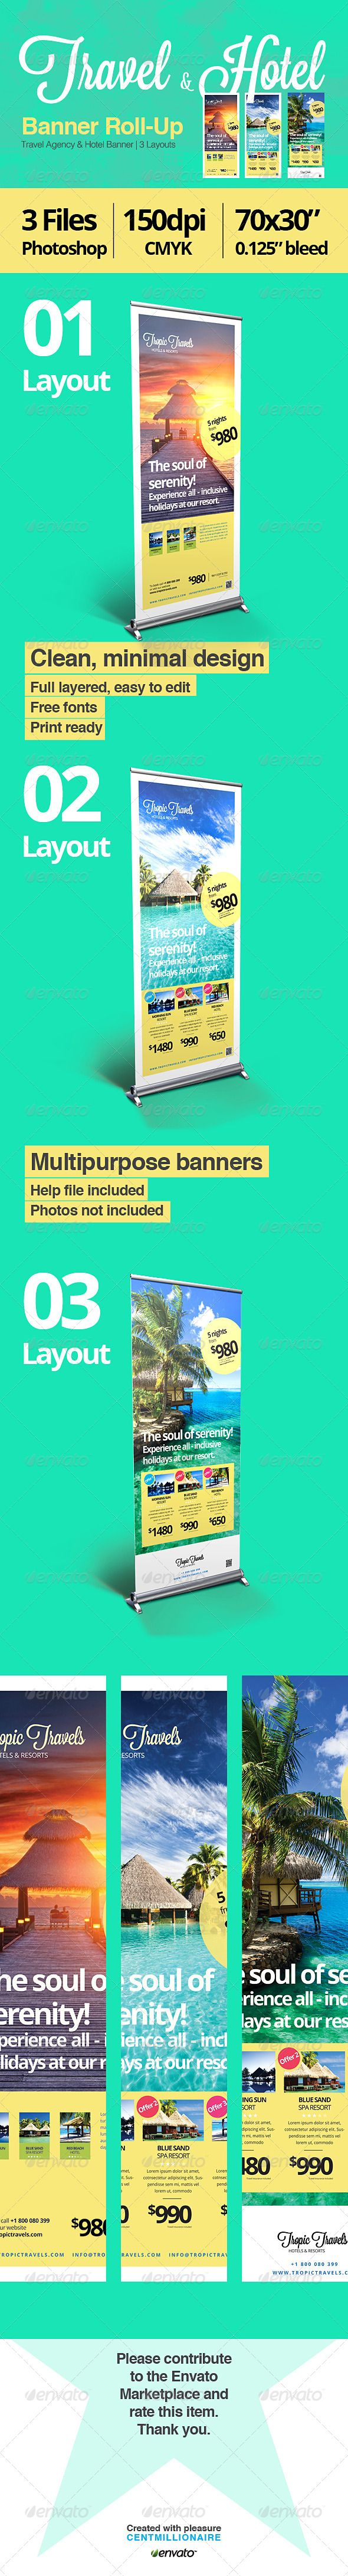 Travel & Hotel Banner Roll-Up - Signage Print Templates